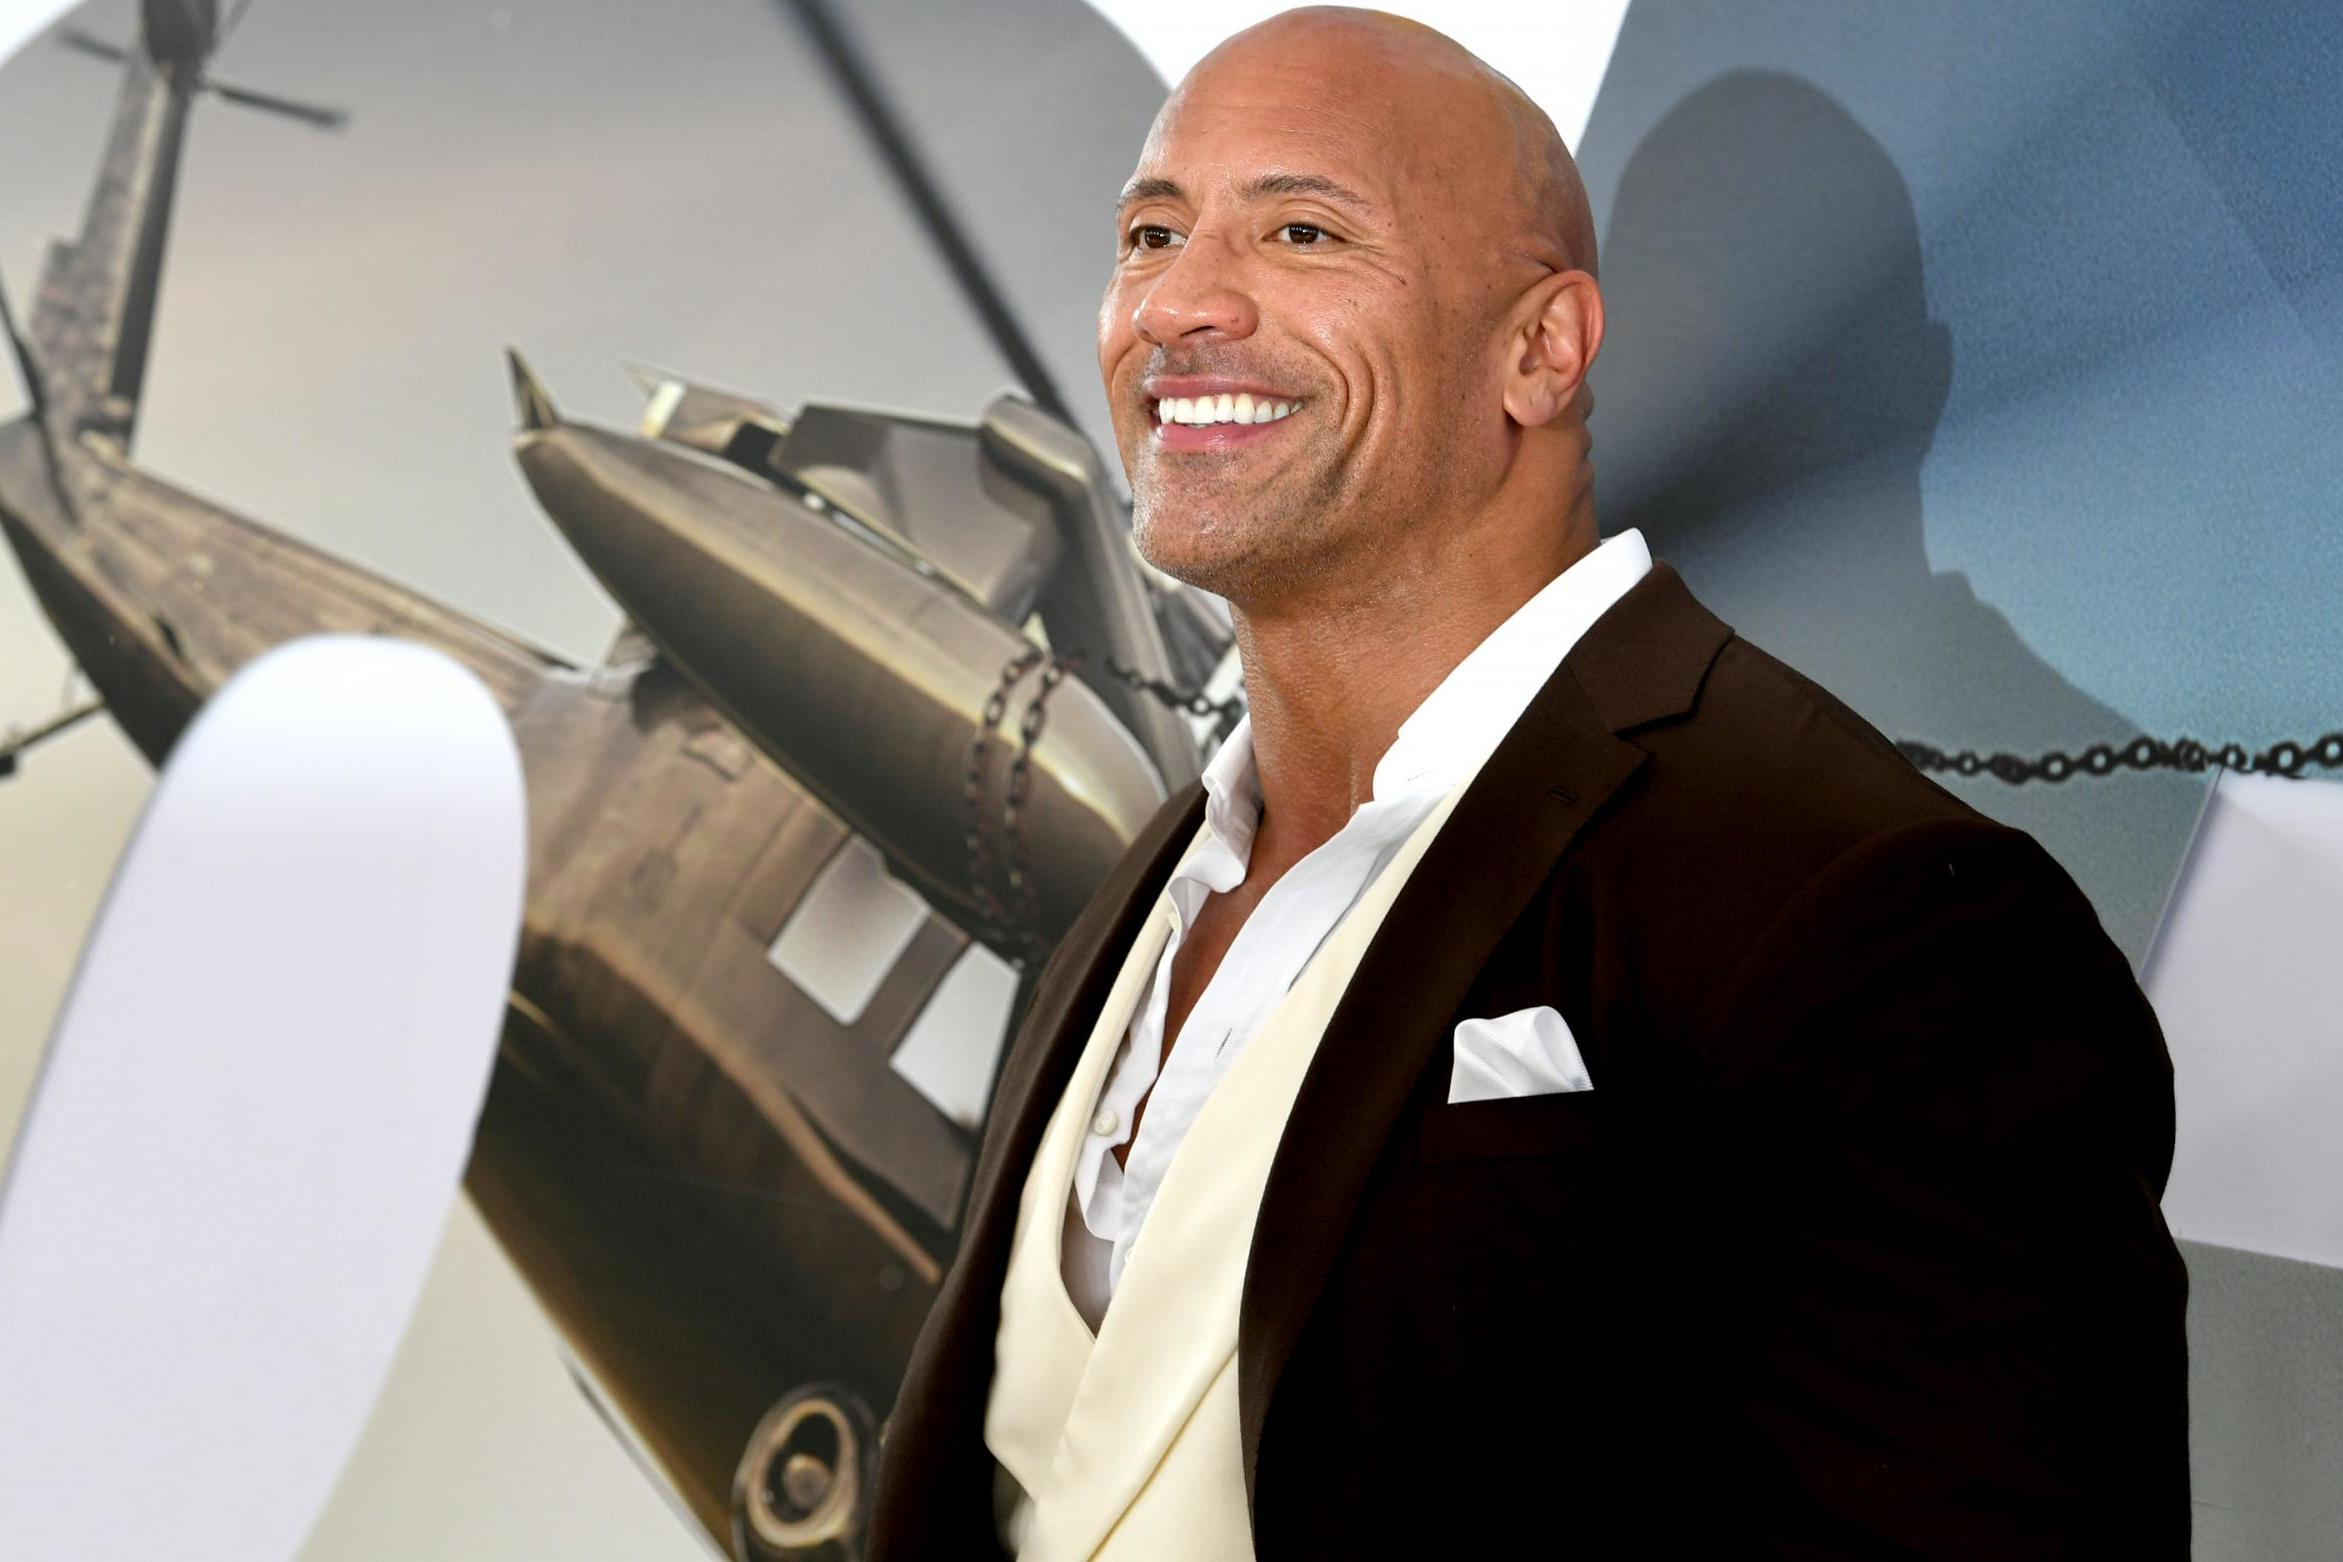 Dwayne Johnson and Chris Hemsworth leads world's highest paid actors in 2019